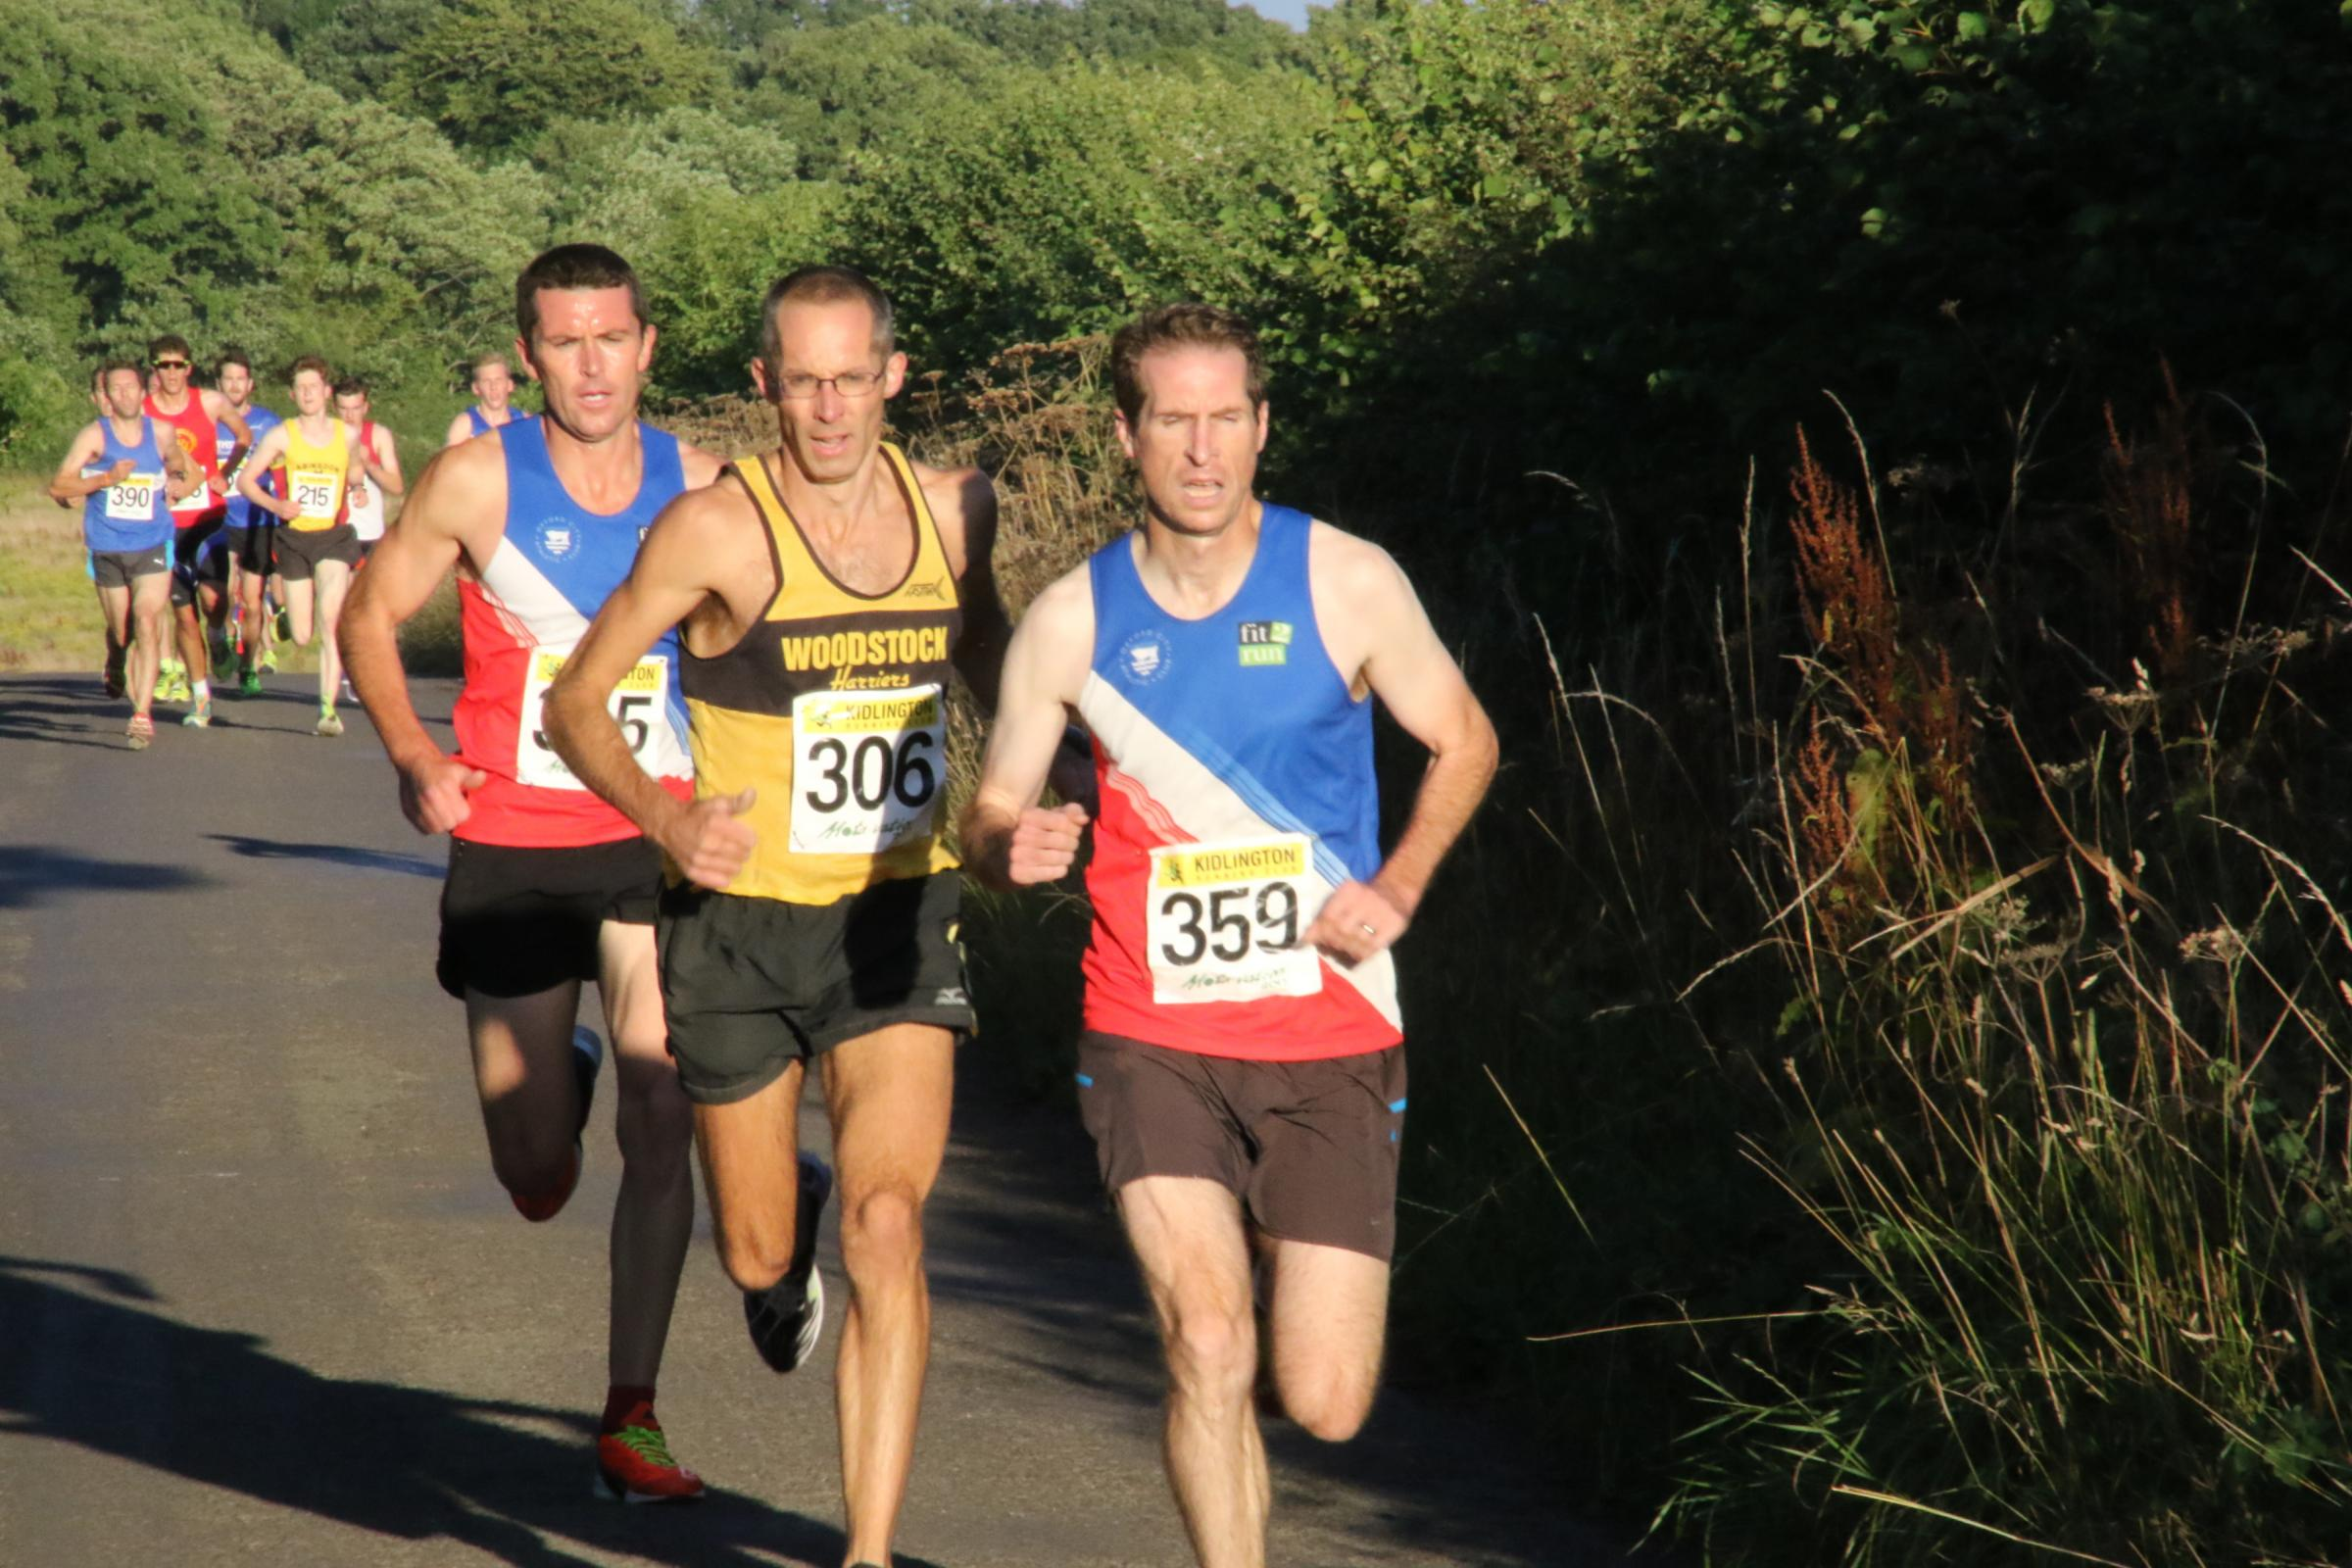 Woodstock Harriers's James Bolton (middle) battles it out with Les Newell (front) and Tegs Jones at Combe Picture: Barry Cornelius